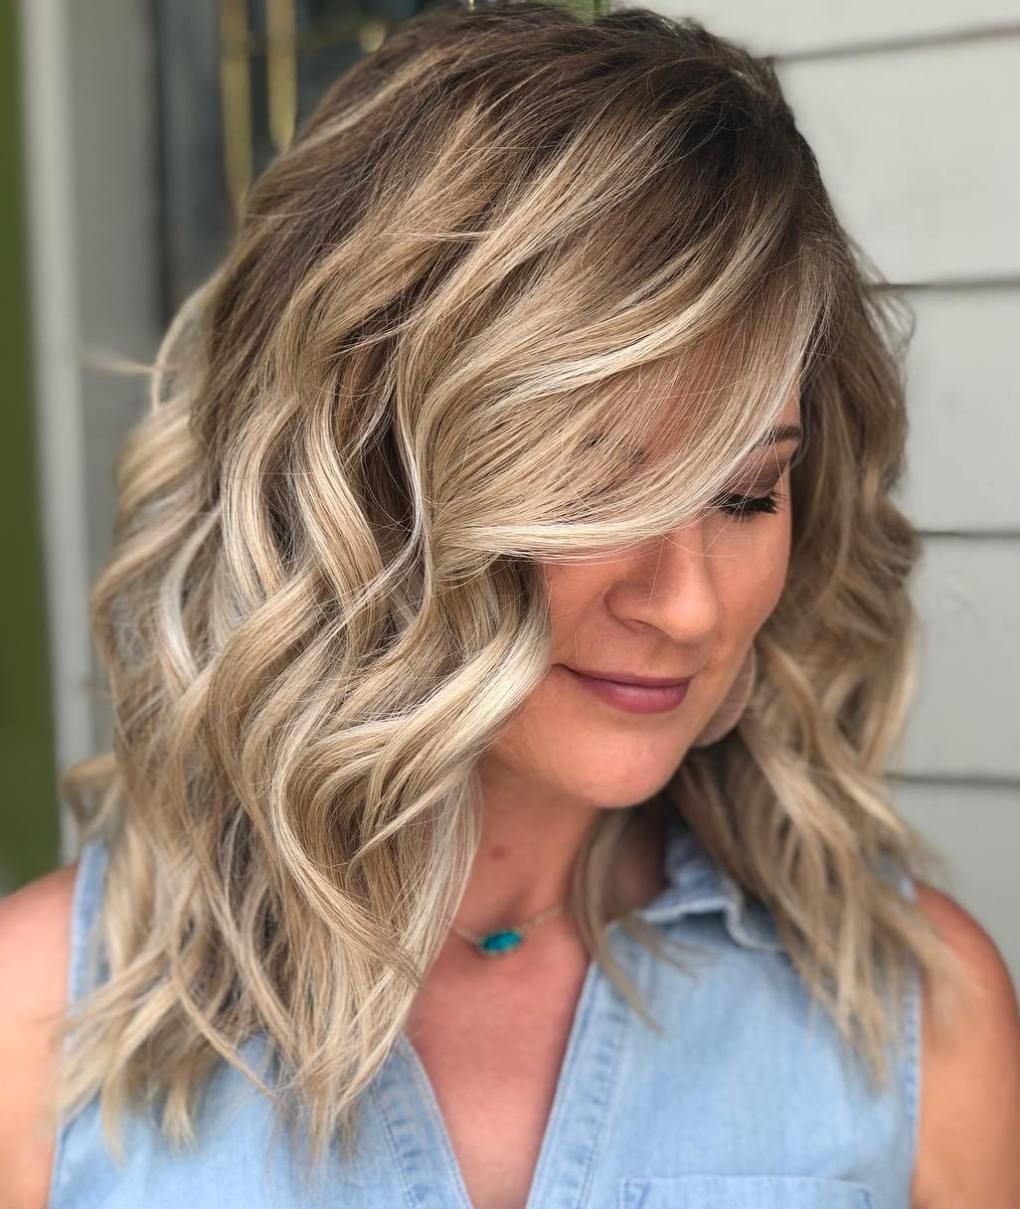 20 Gorgeous Blonde Hair Color Trends For Fall 2019 - Easy ...